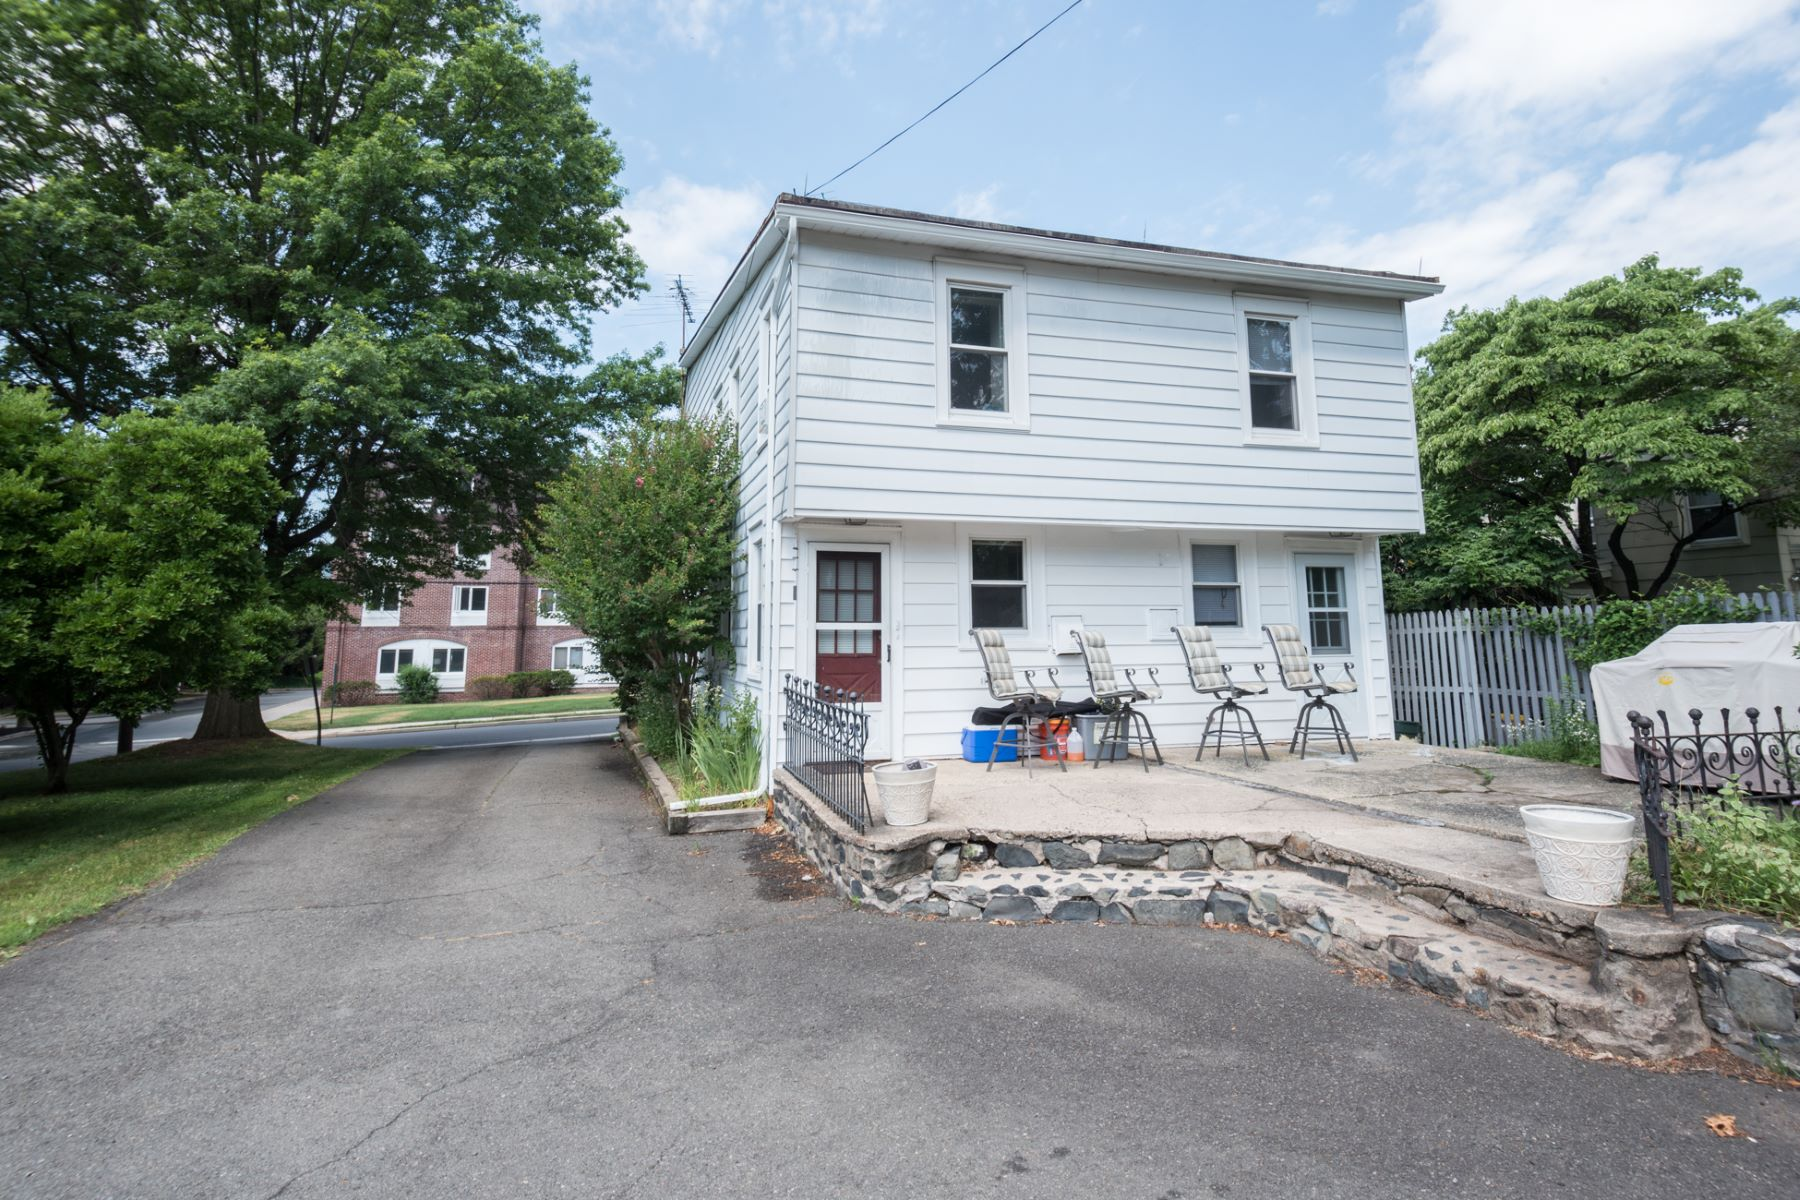 Additional photo for property listing at Home And Income 17-19 Burd Street Pennington, New Jersey 08534 United States